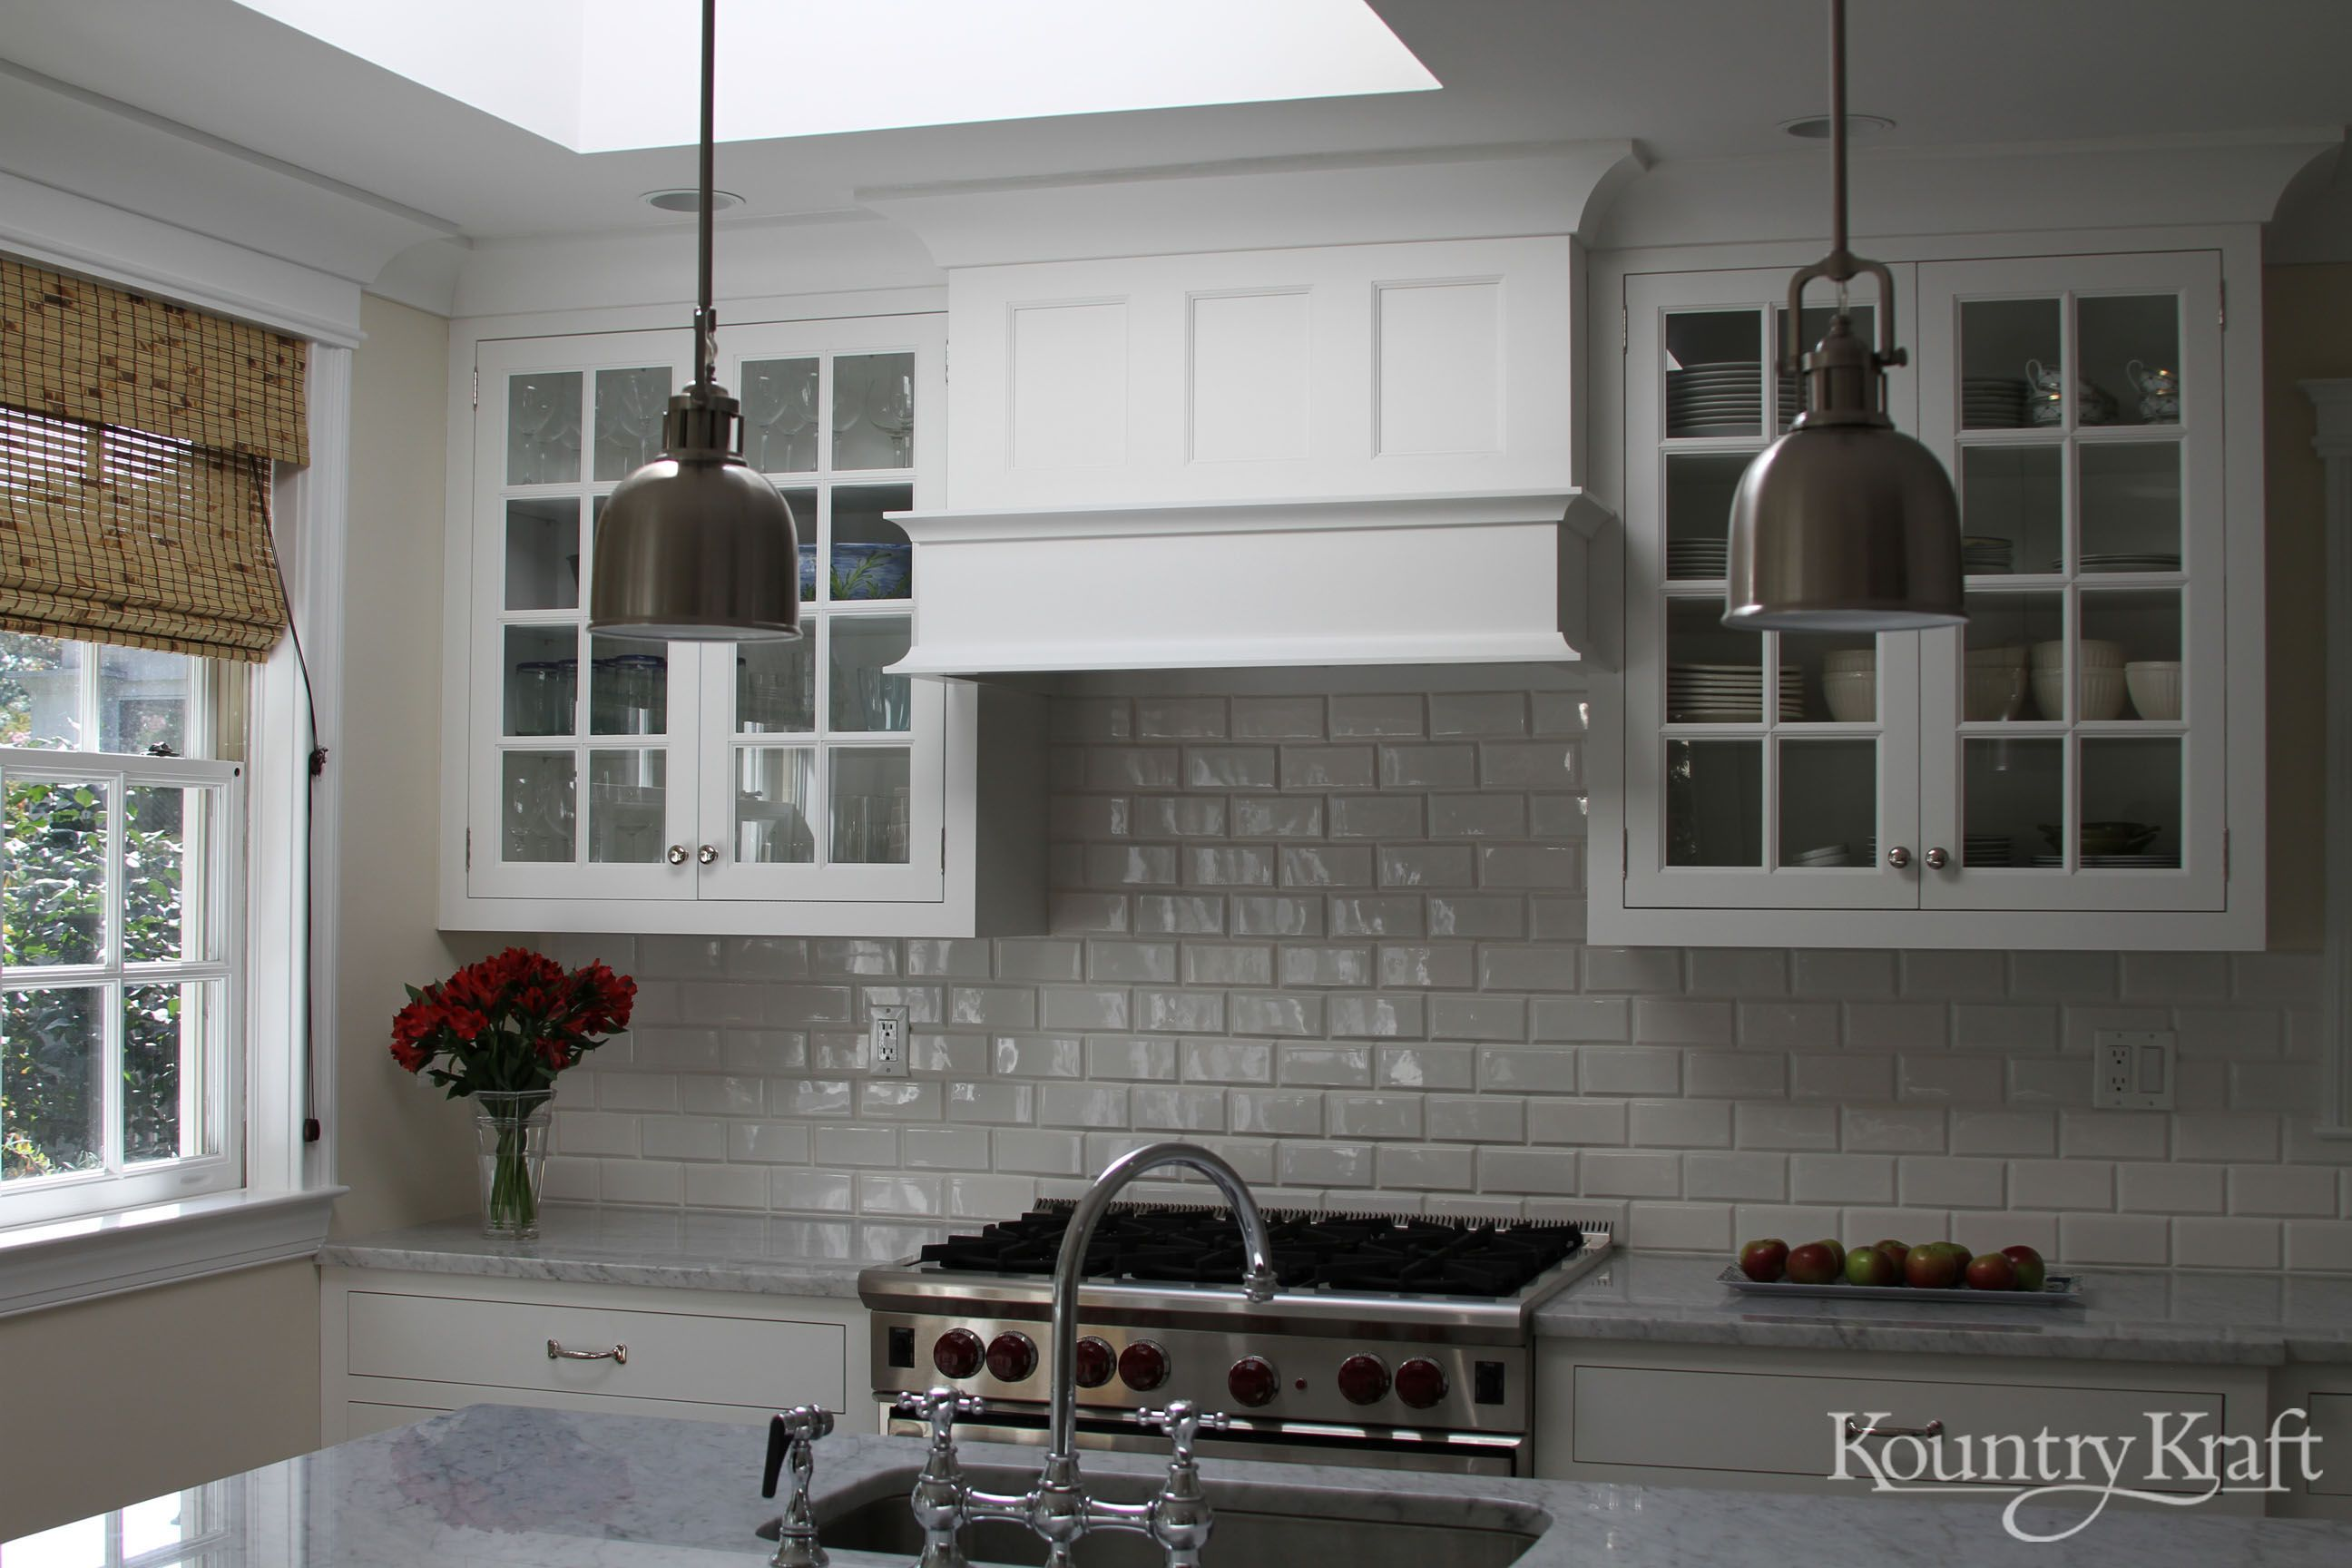 Custom Kitchen Cabinets Designed By Bradford Design LLC In Bethesda MD.  This Classic White Kitchens